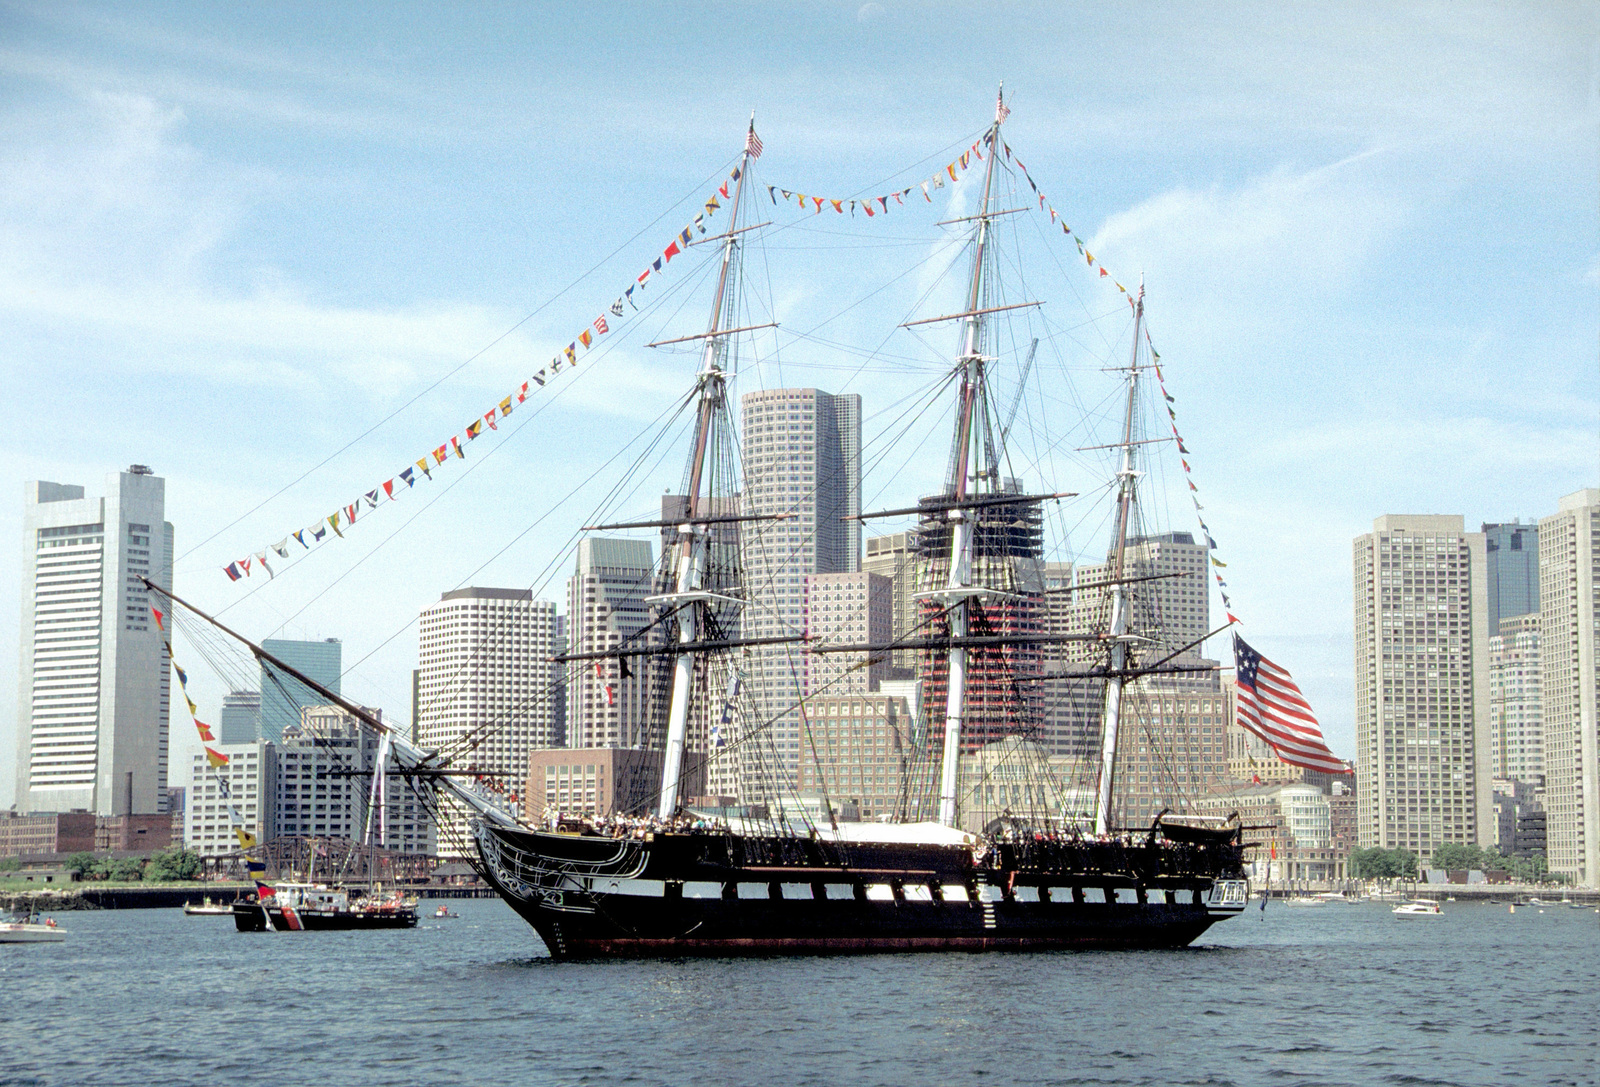 Guests fill the deck of the sail frigate USS CONSTITUTION during its annual turnaround cruise. The CONSTITUTION is towed into the harbor each year and returned to its berth facing the opposite direction so that its masts do not bend from the effects of the sun and wind